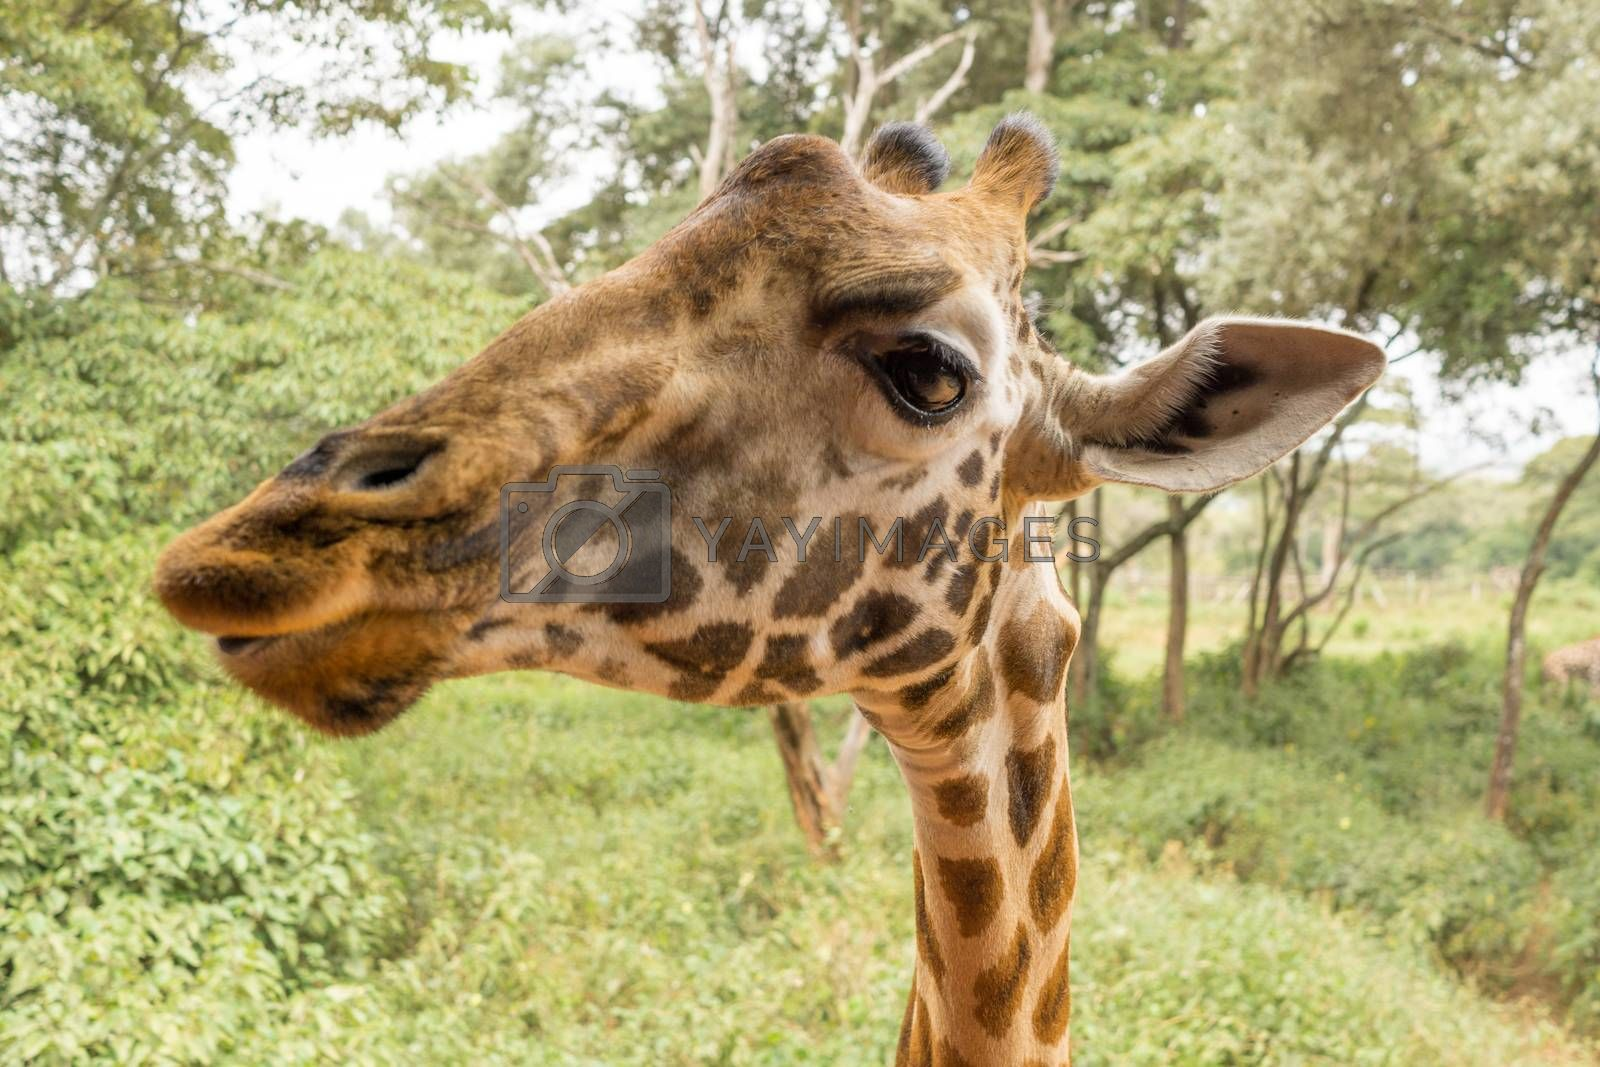 Royalty free image of Portrait of a Giraffe by derejeb